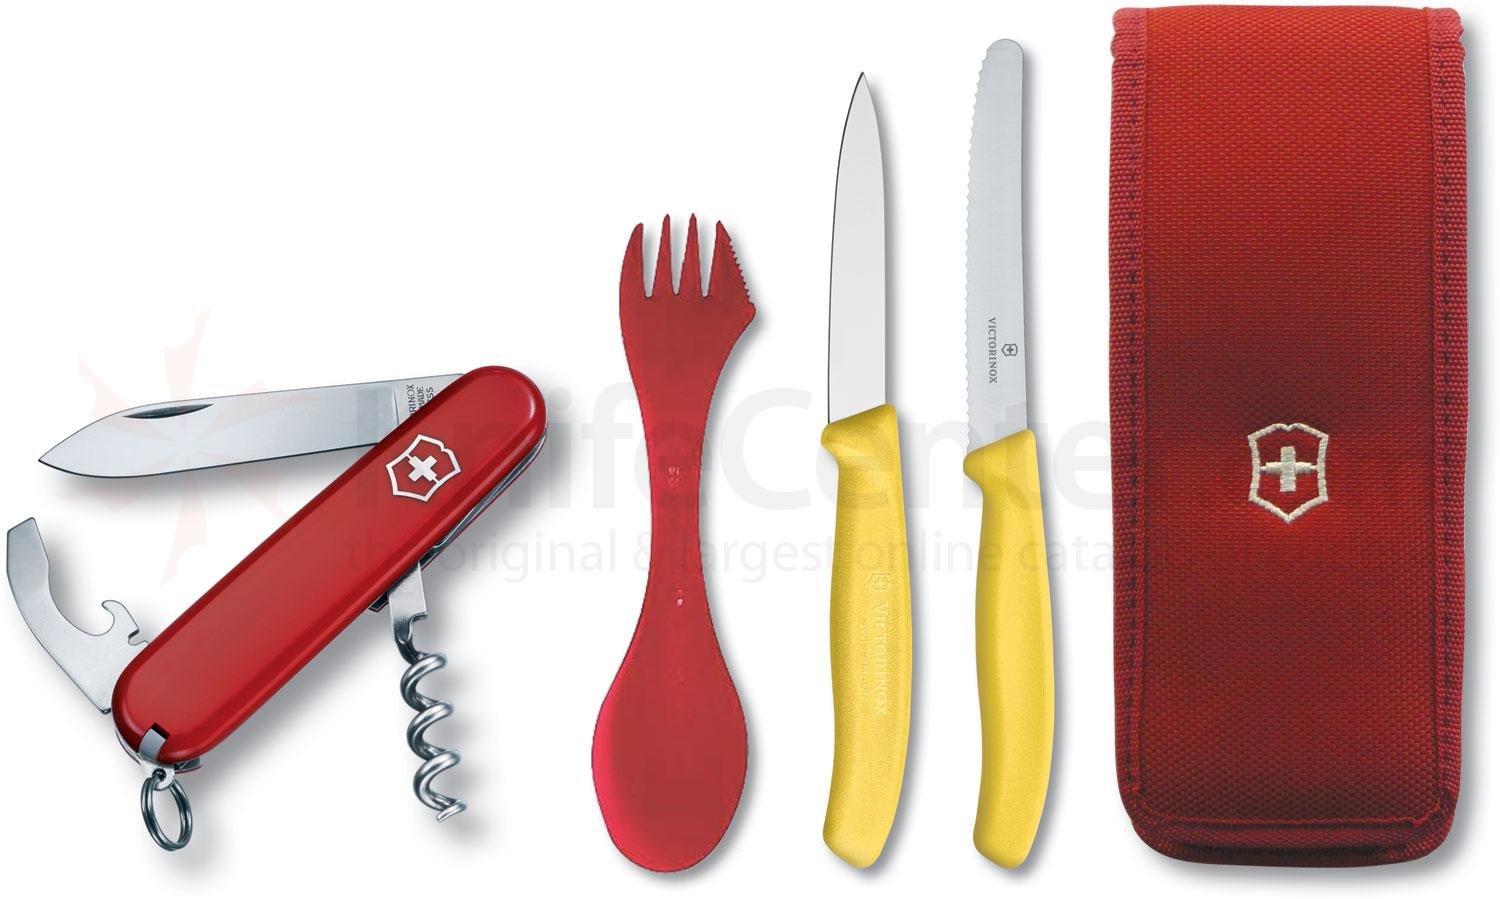 Victorinox Swiss Army Waiter Multi-Tool Camping Set, Spork, Paring and Utility Knives (57609)